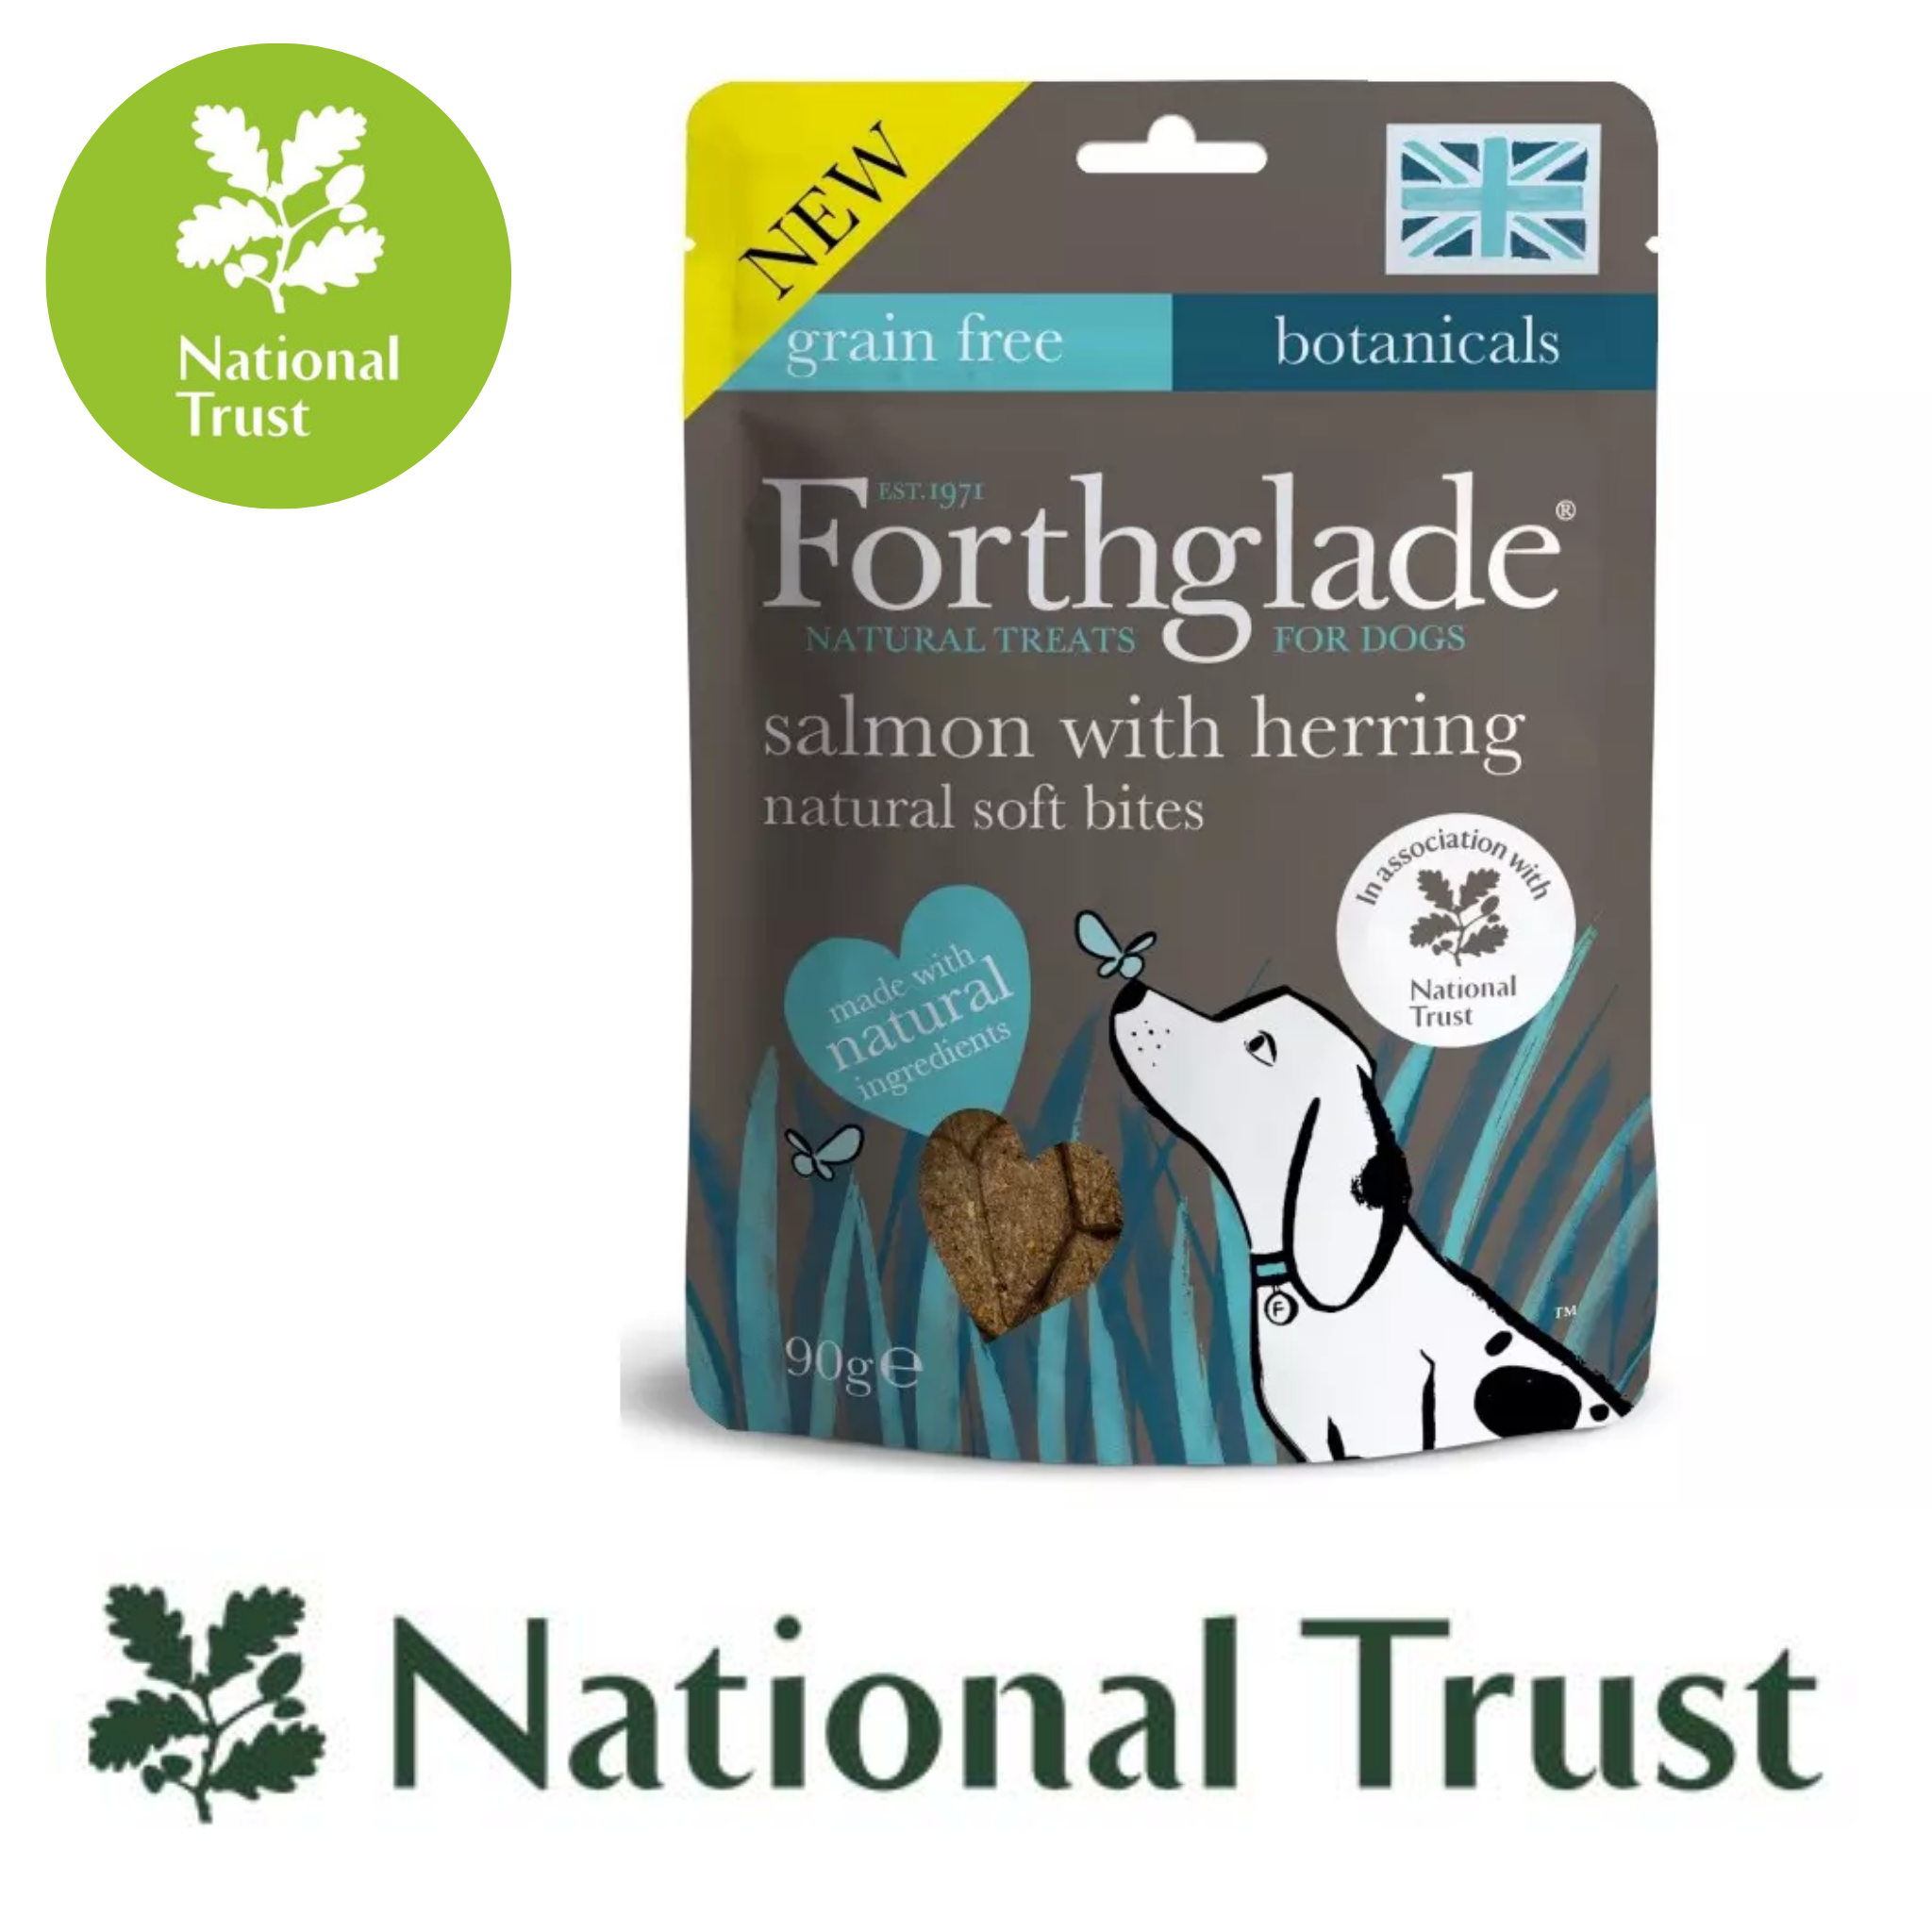 National Trust Forthglade Salmon & Herring Gourmet Dog Treats - 90g, Dog Treats by Dog In A Box